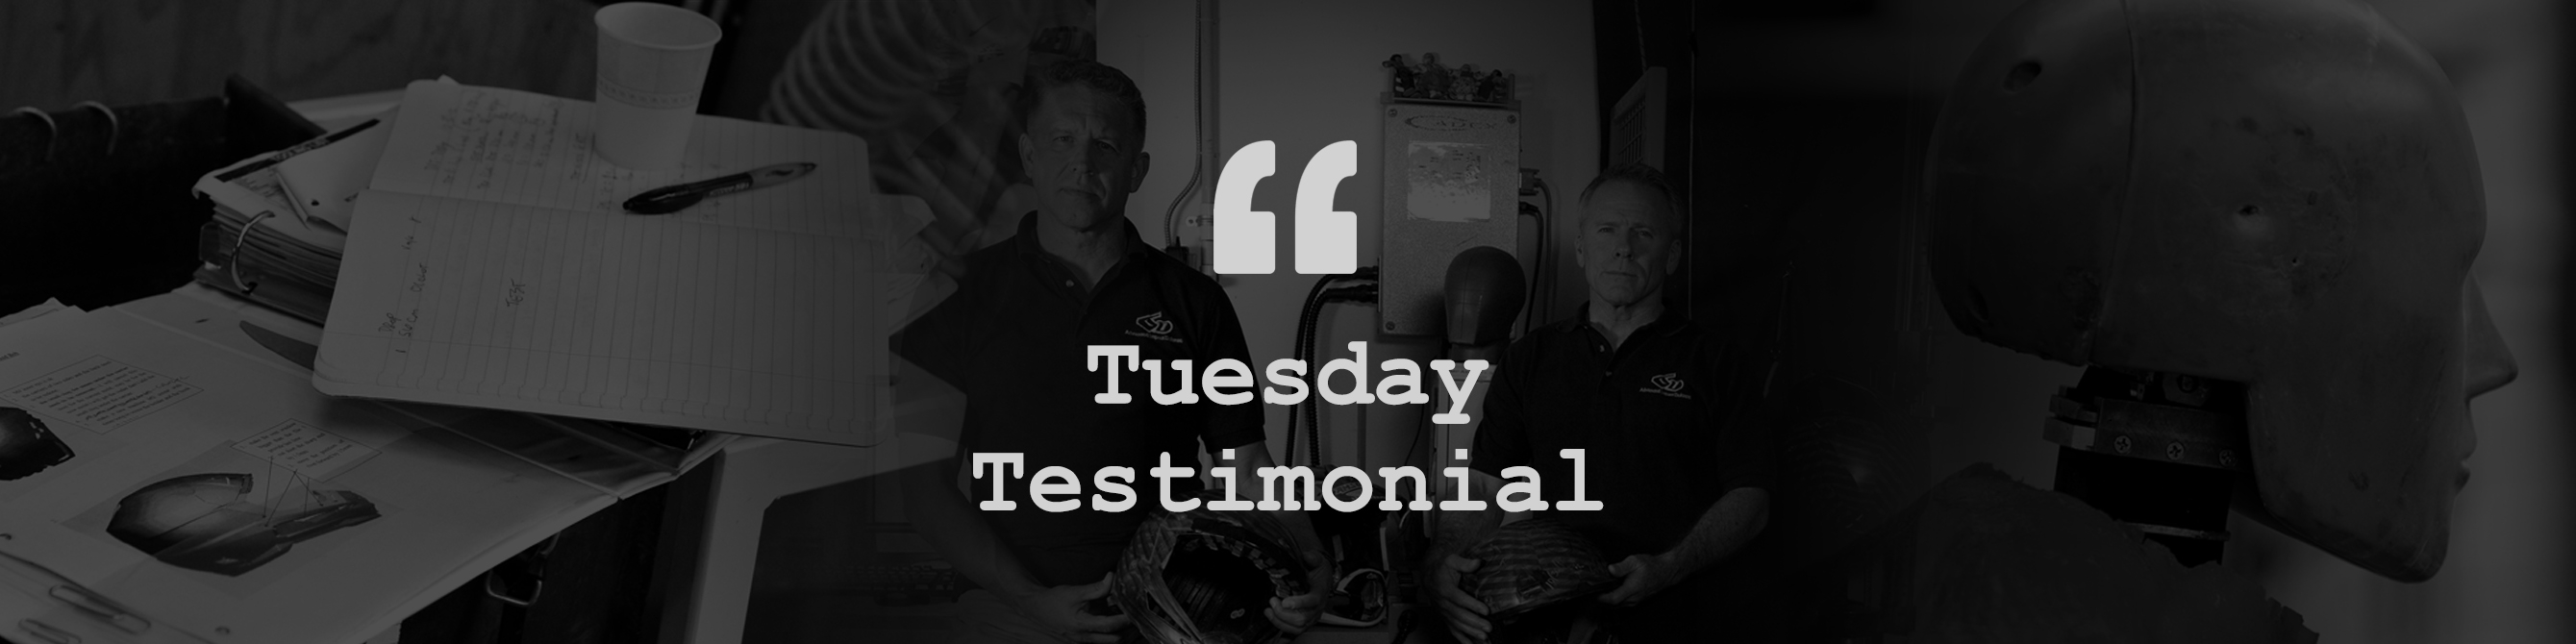 Tuesday Testimonial Header_1